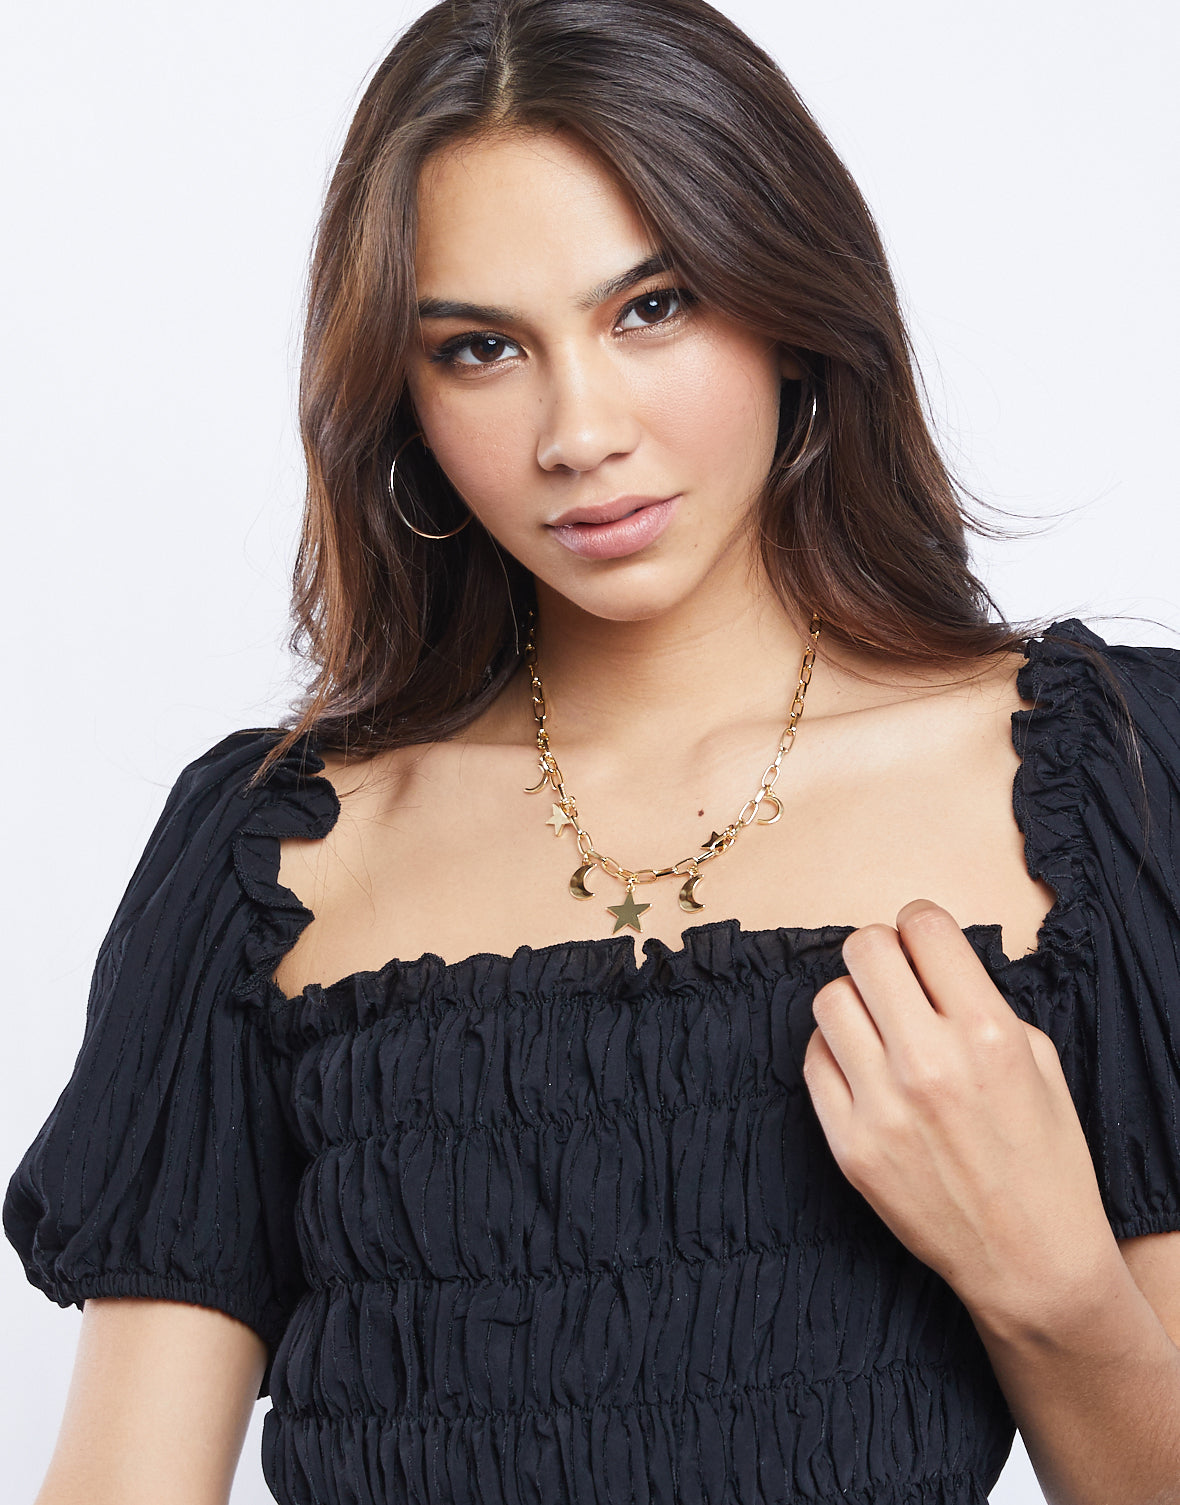 Celeste Chain and Charms Necklace